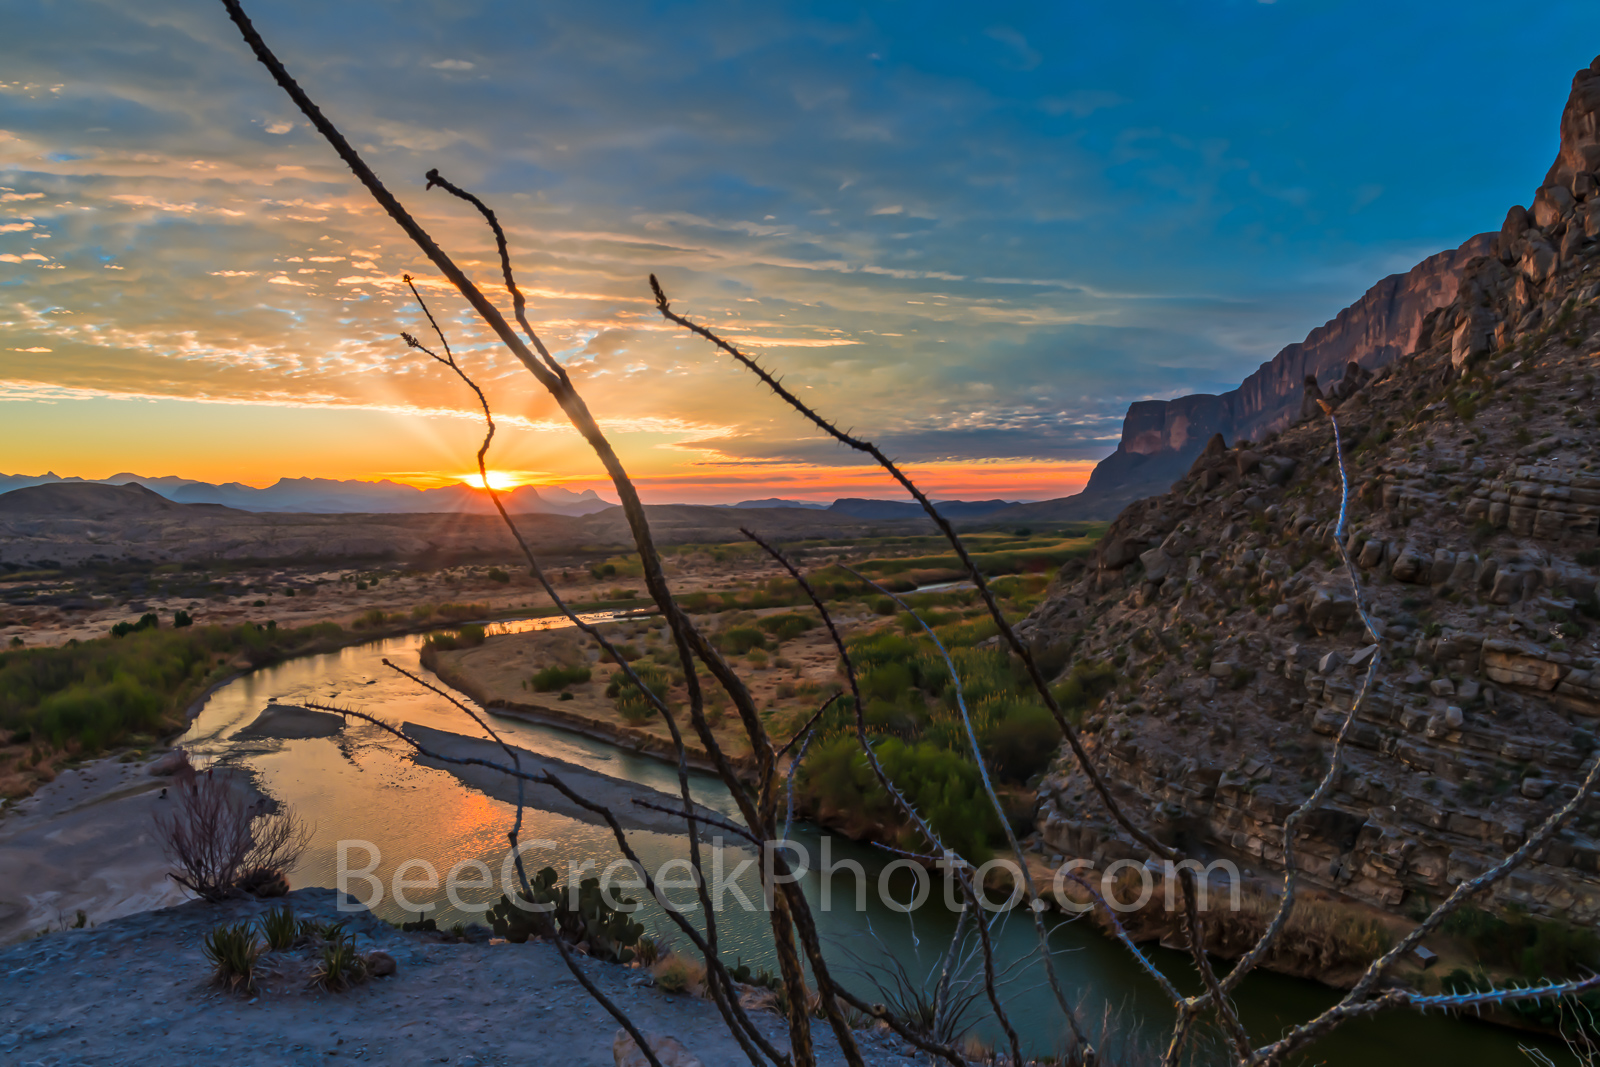 Santa Elena Canyon Sunrise 2 - Captured another great west Texas sunrise just before the sun pop over the nearby mountains...